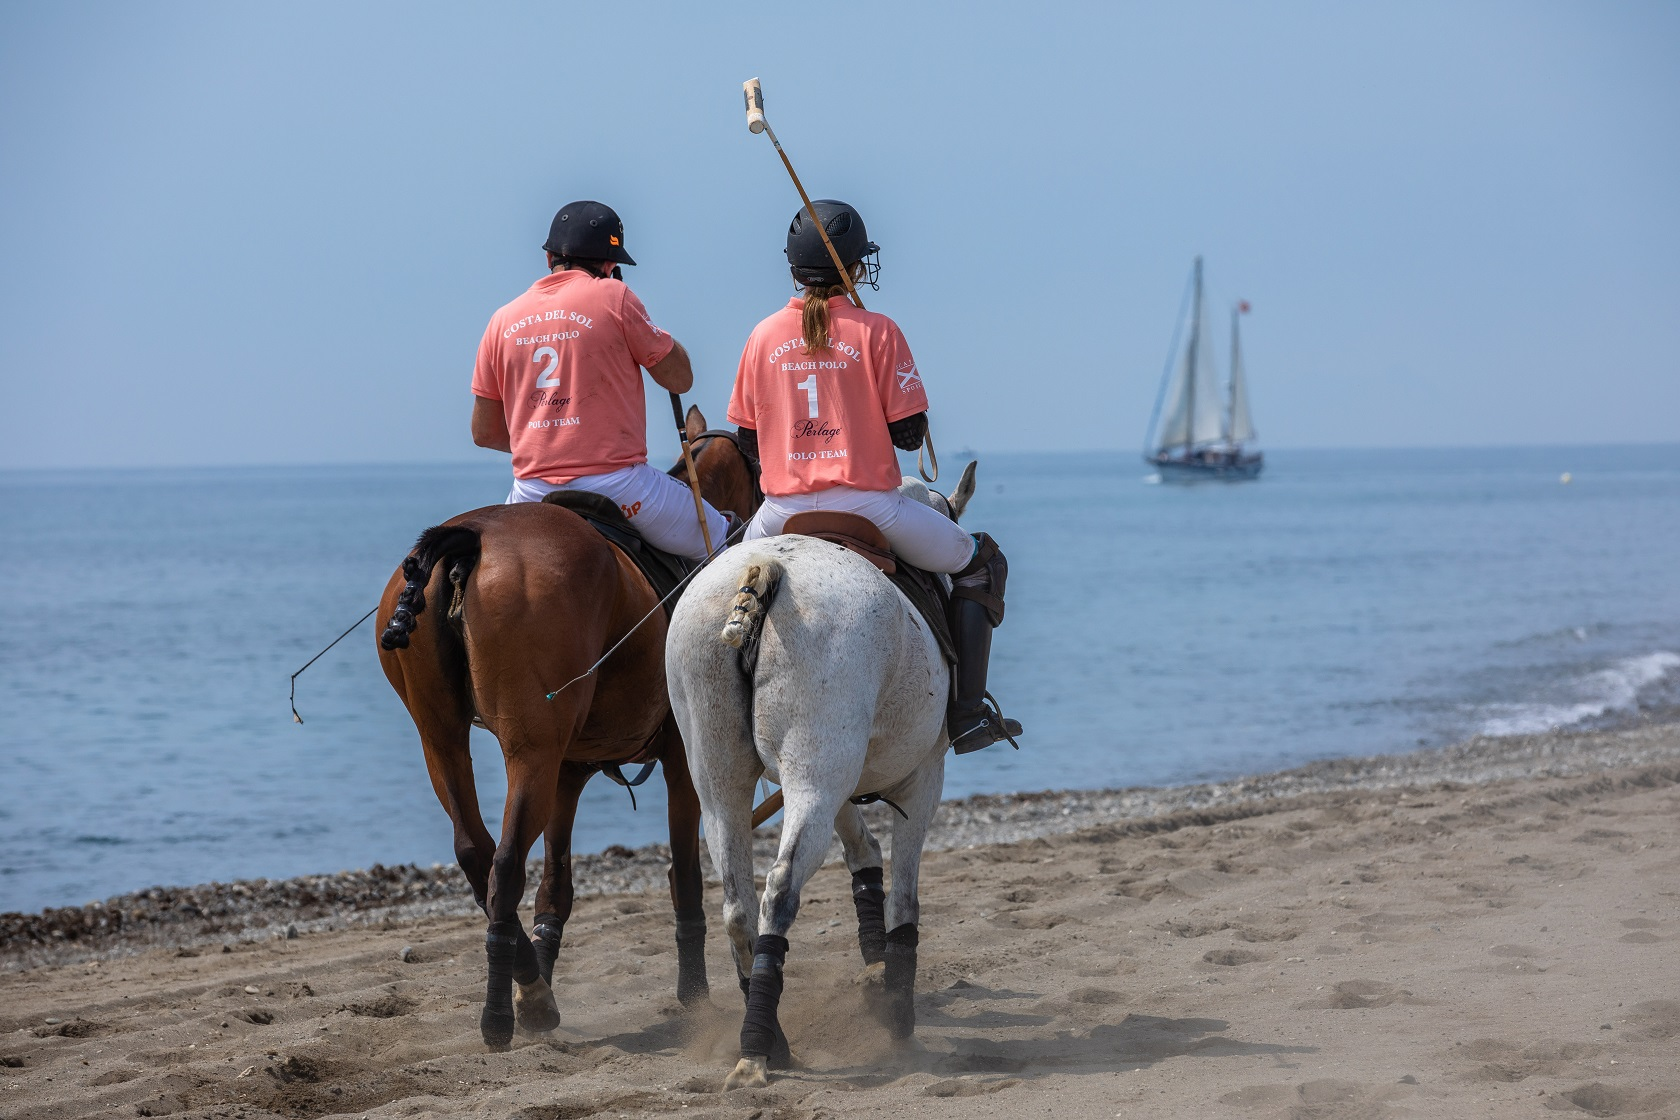 glamour-and-excitement-at-the-first-costa-del-sol-beach-polo-tournament 4 polomagazine